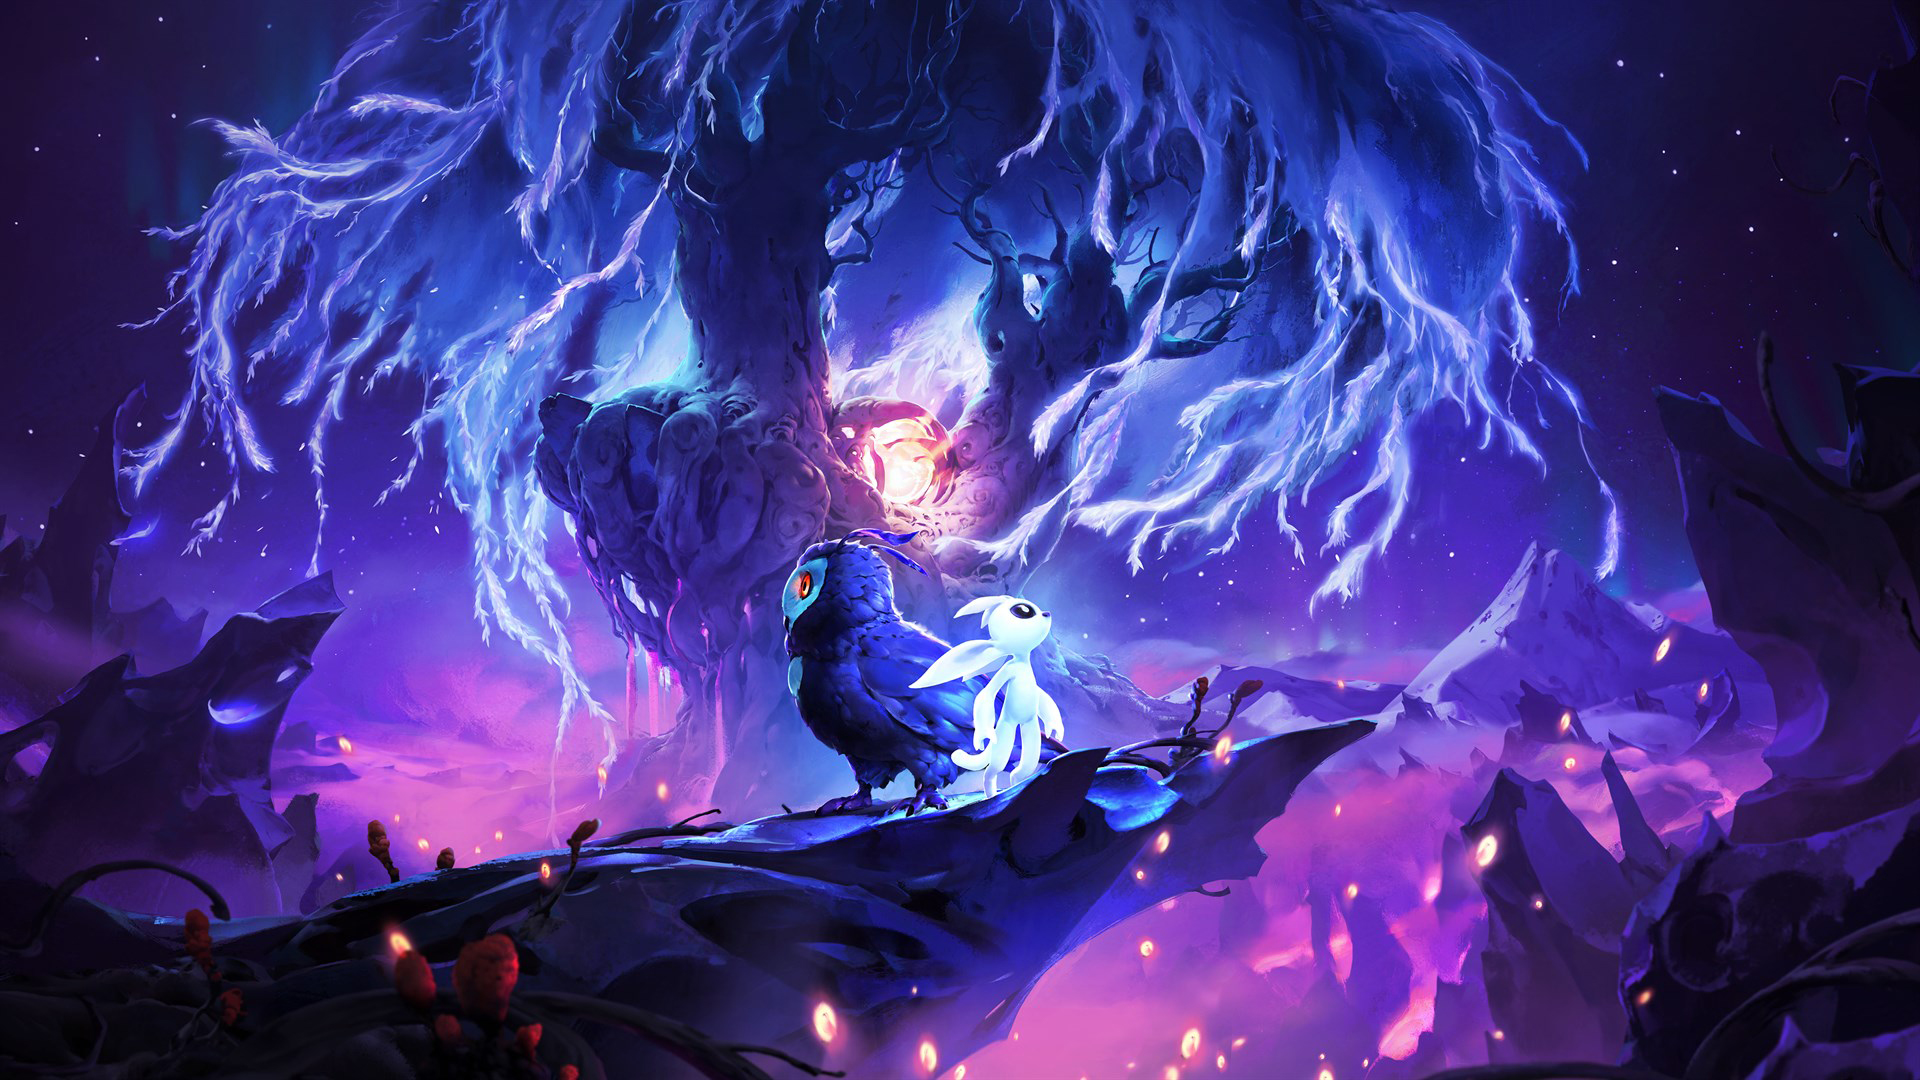 Game art for Ori and the Will of the Wisps